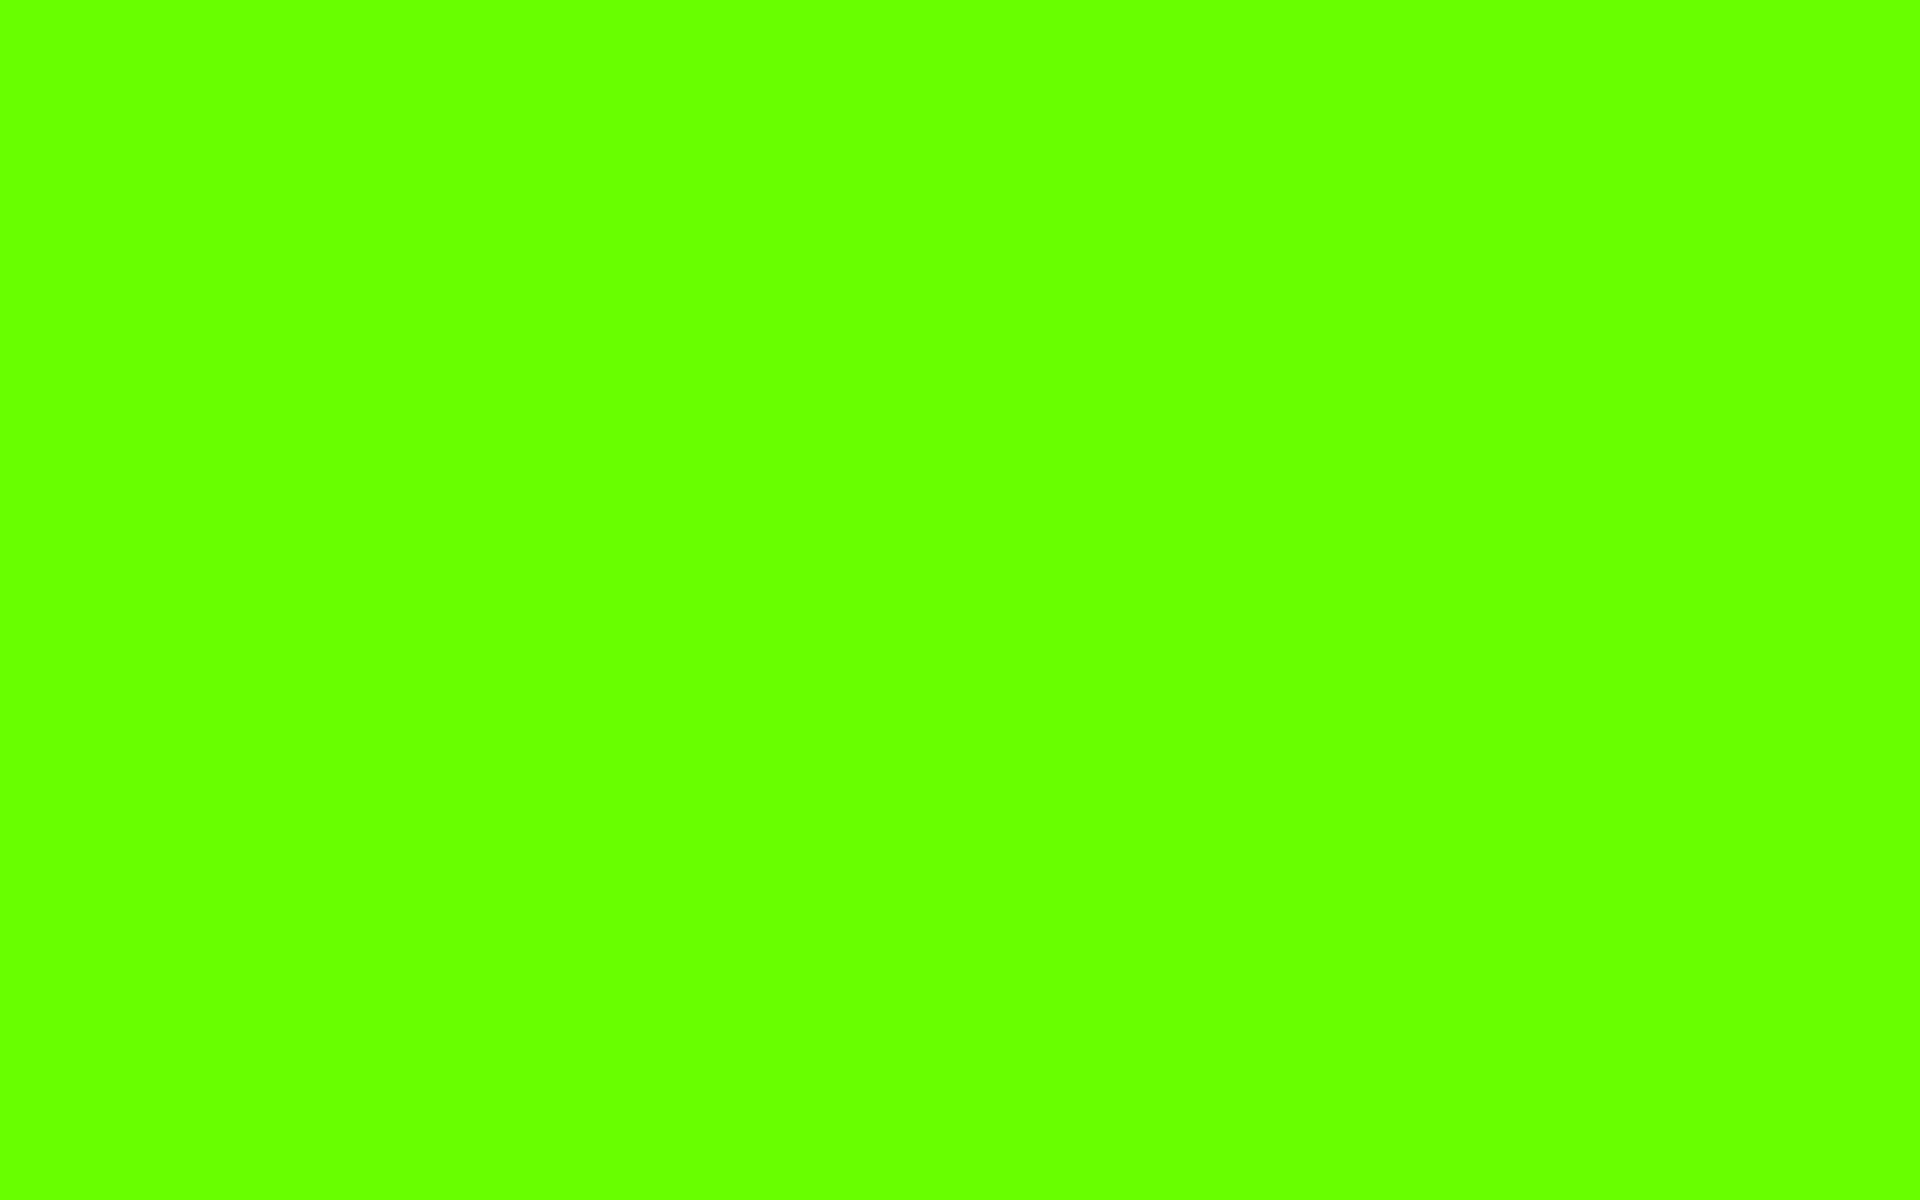 Green Bright Wallpaper